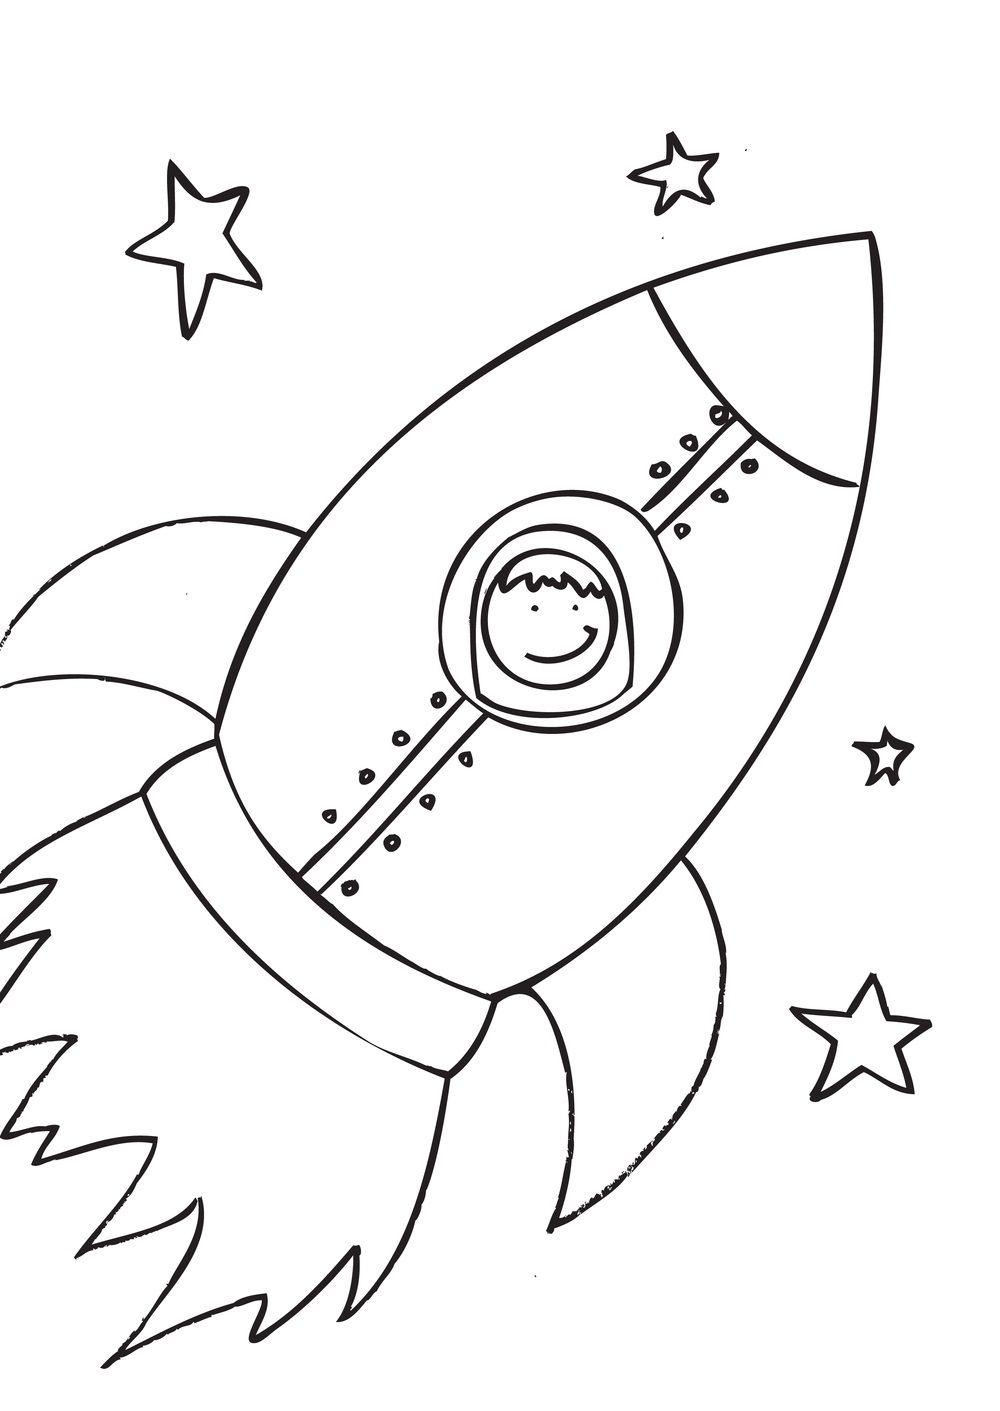 Free Printable Rocket Ship Coloring Pages Jpg 1000 1411